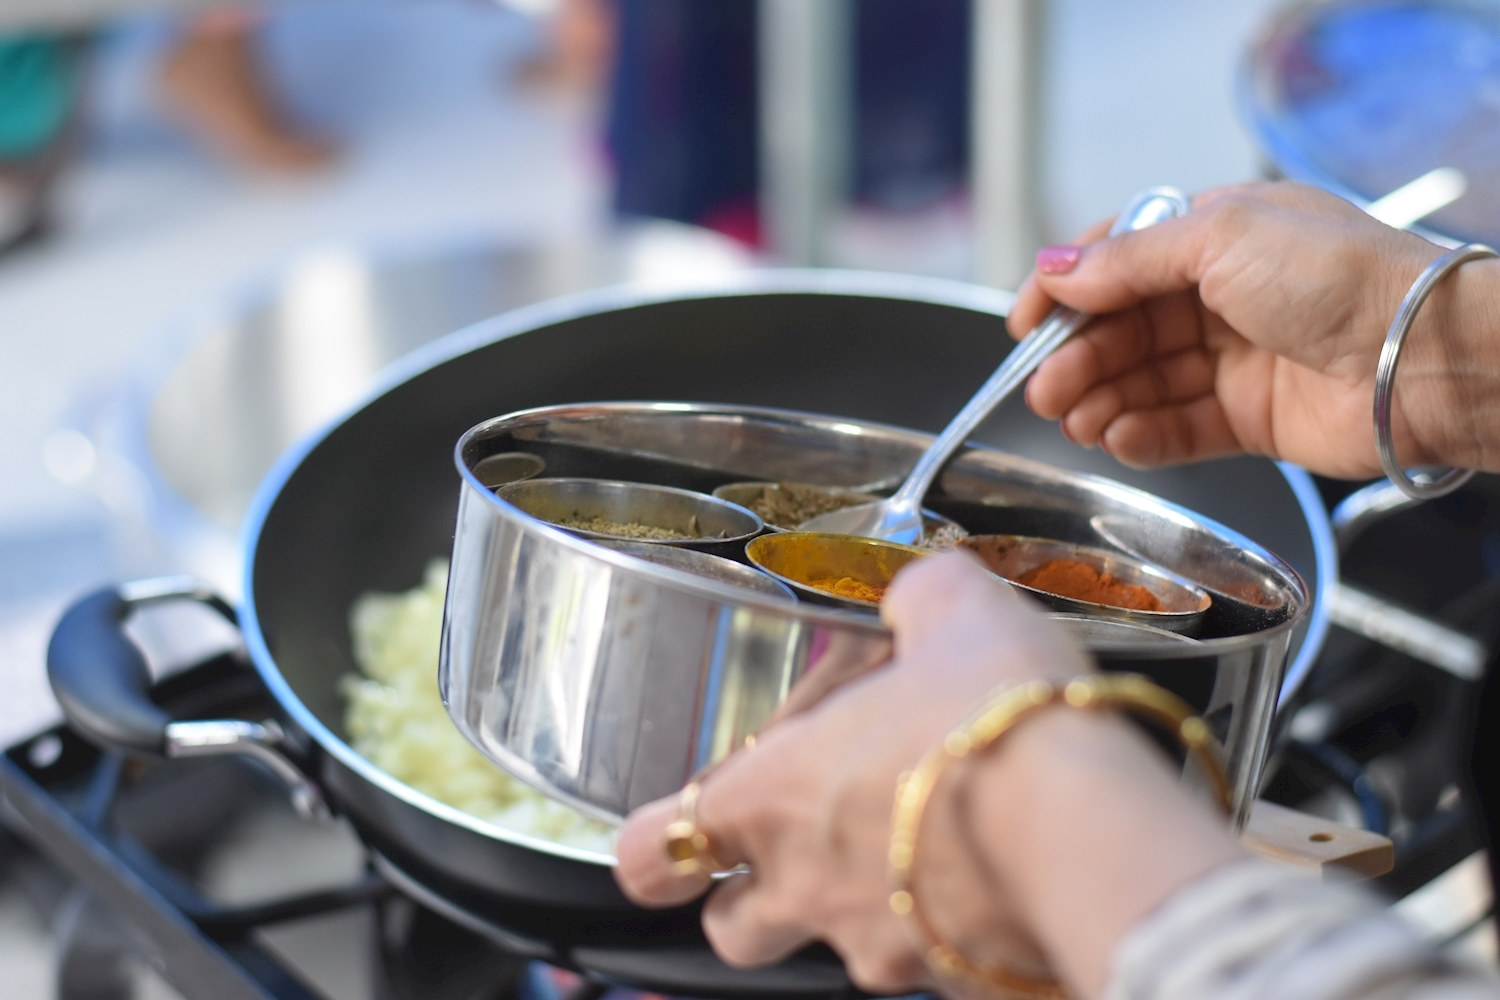 How to make an authentic Indian curry